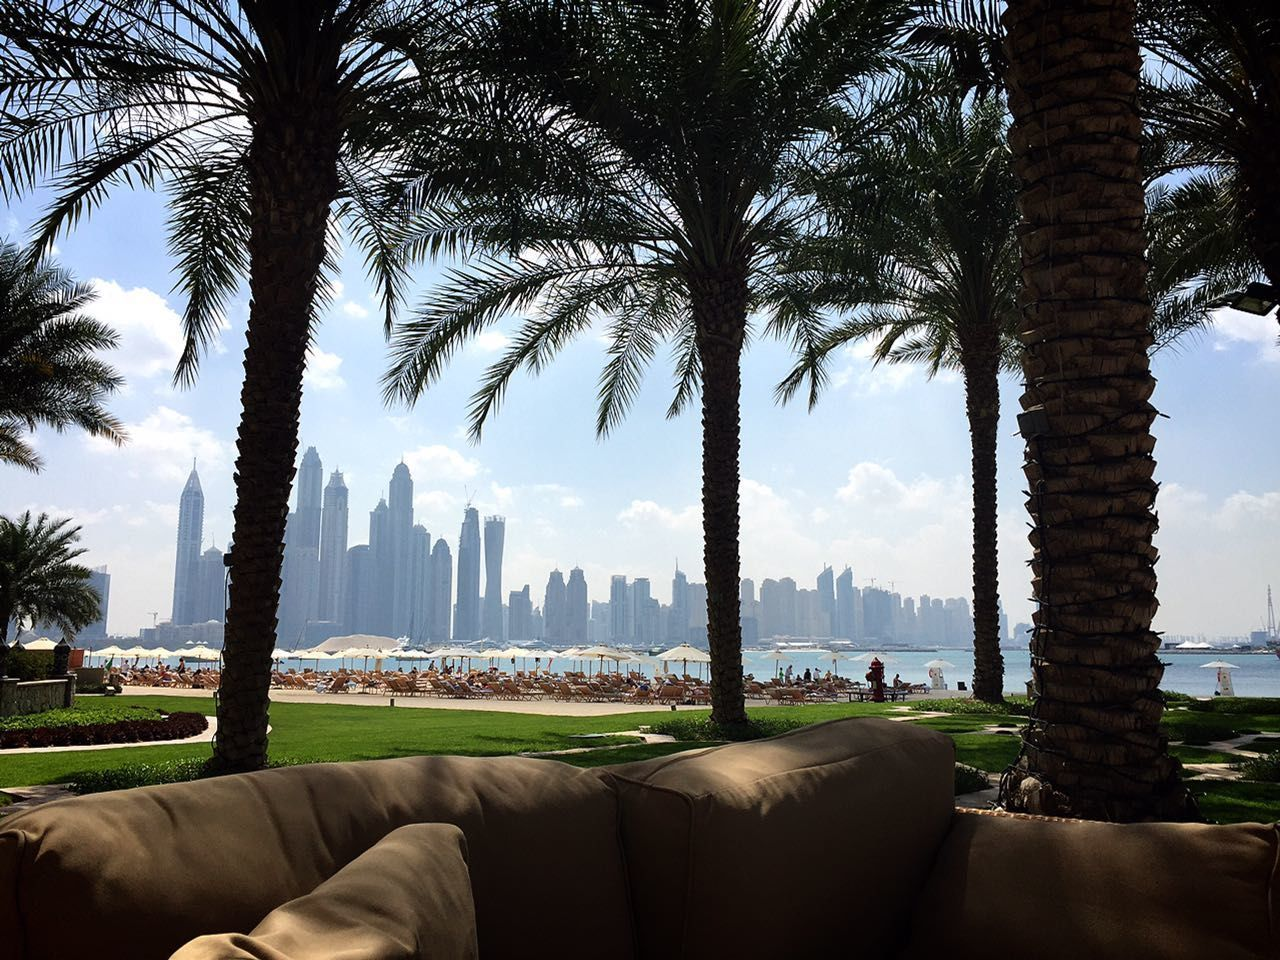 skyscraper, palm tree, architecture, tree, city, built structure, building exterior, cityscape, modern, tree trunk, urban skyline, sky, day, growth, luxury, travel destinations, outdoors, luxury hotel, beauty in nature, apartment, water, no people, nature